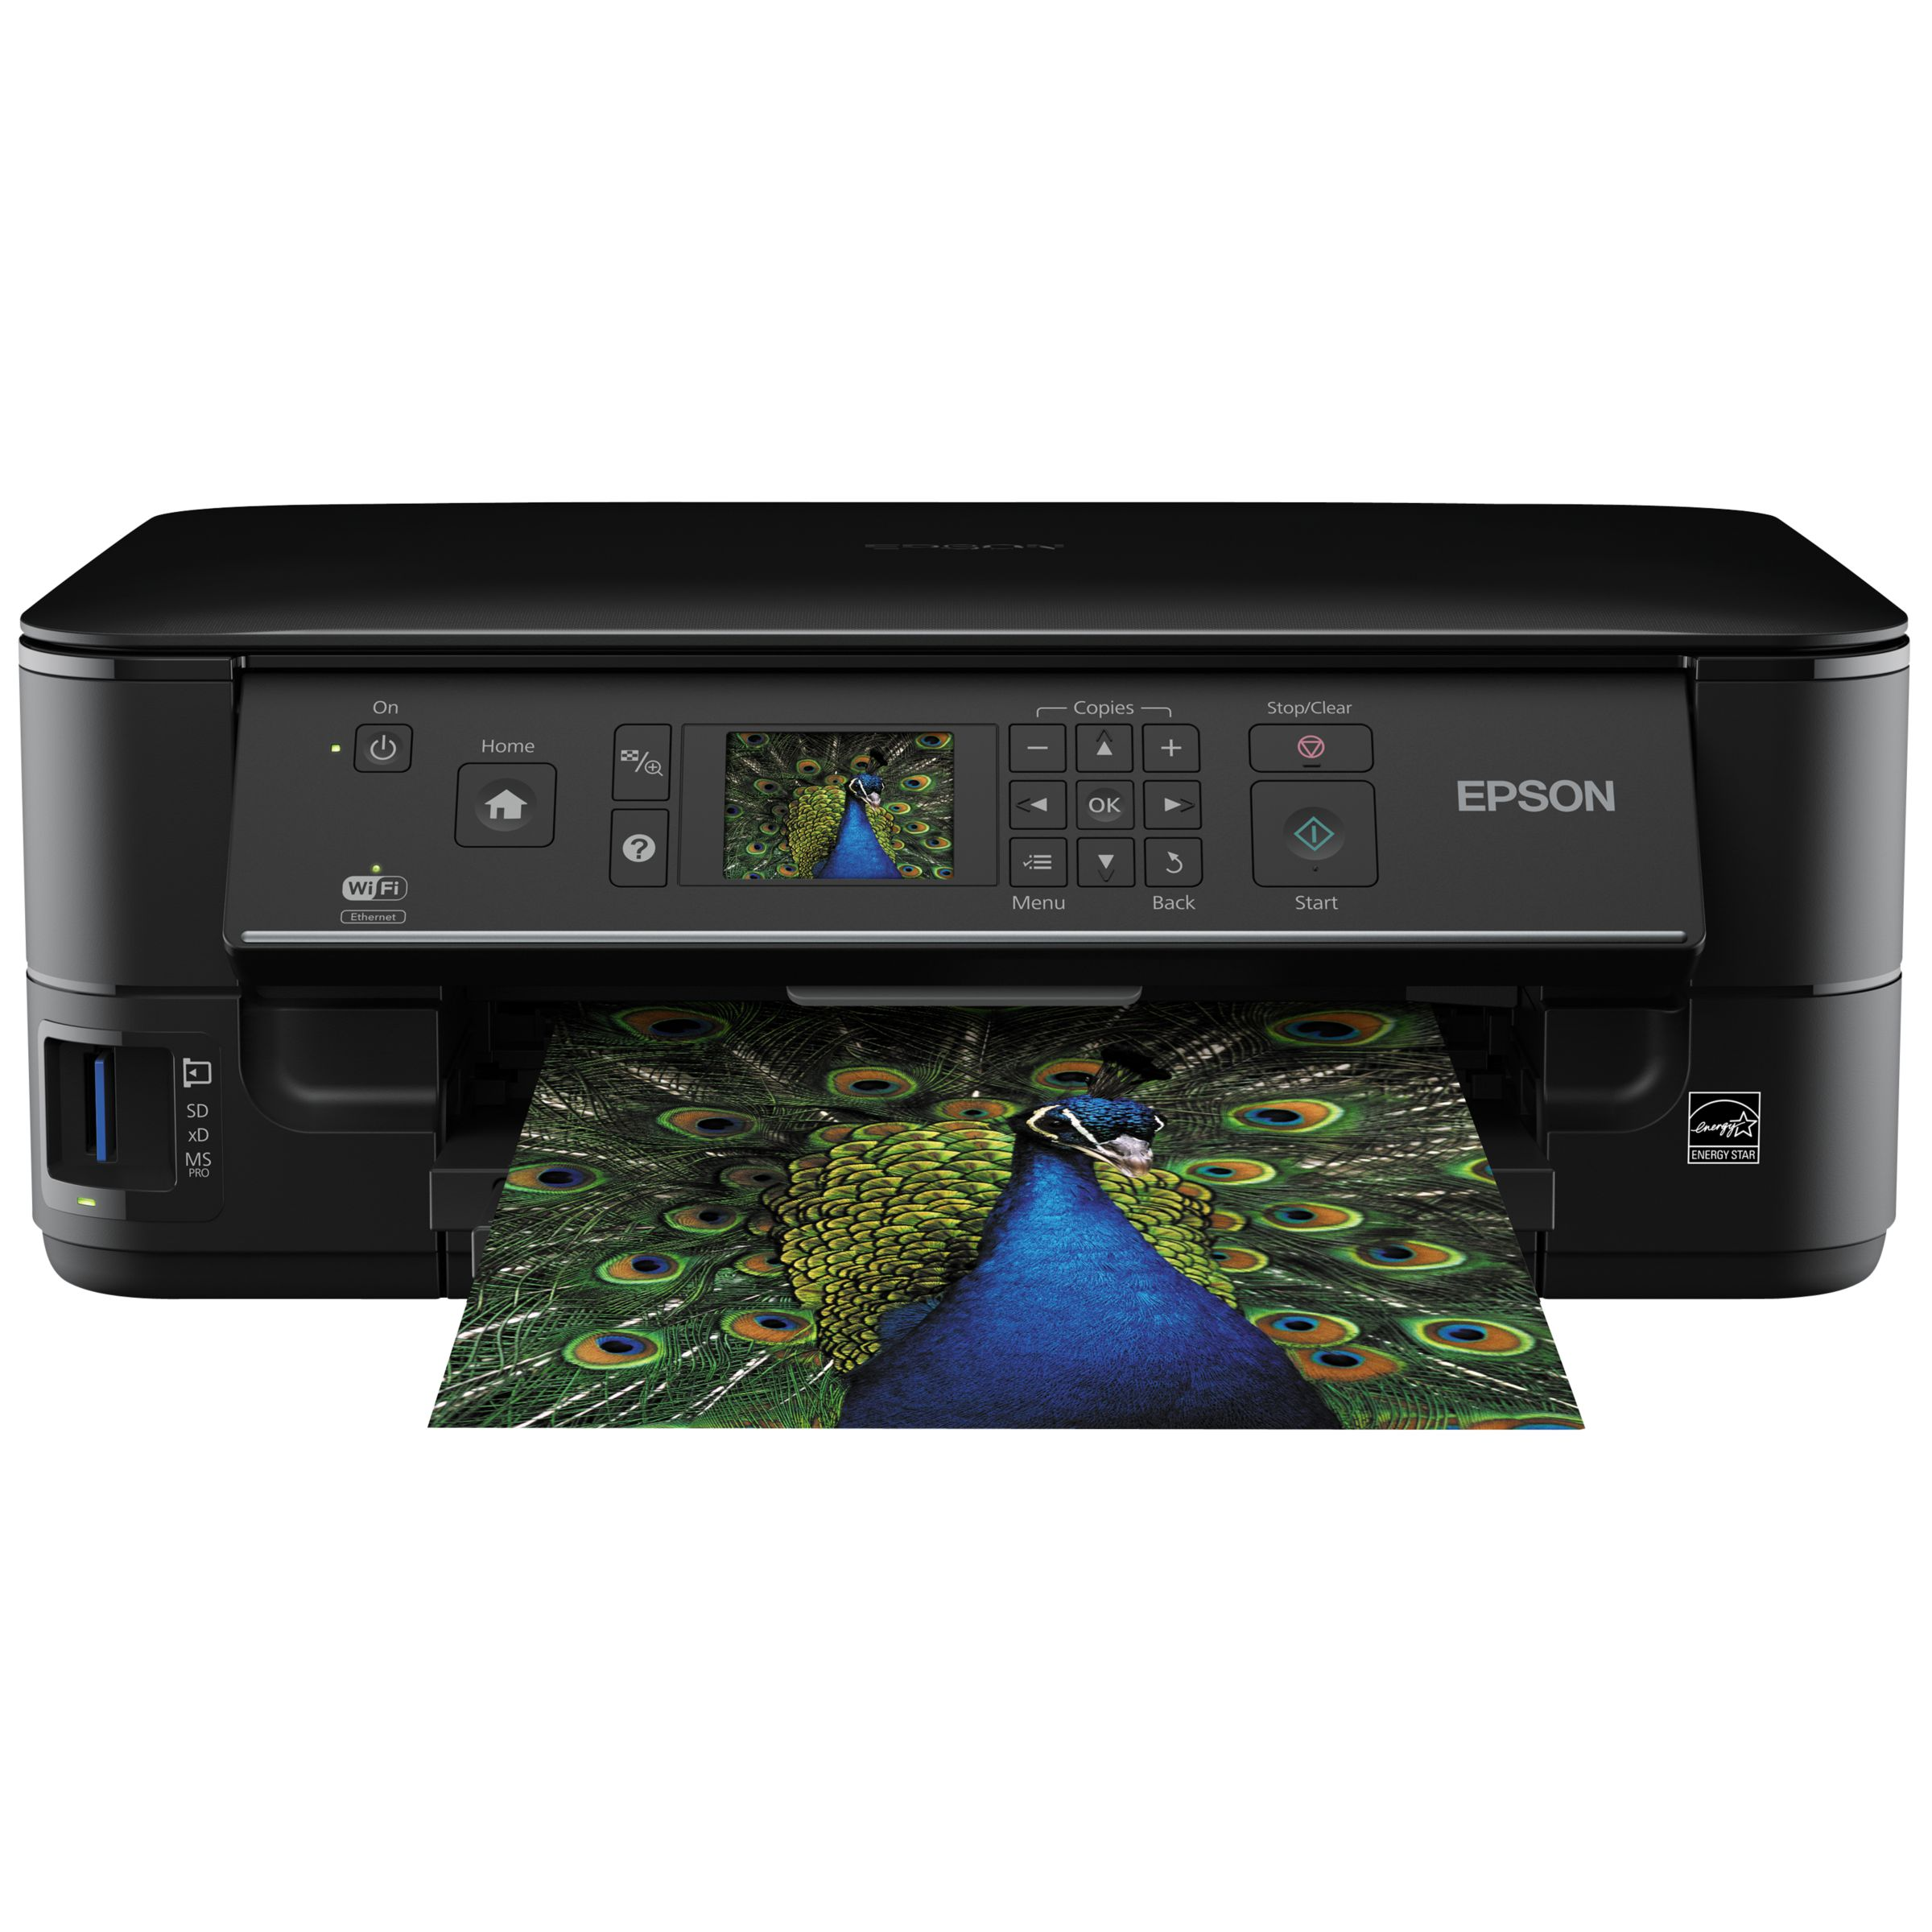 Epson Stylus SX535WD All-In-One Wireless Printer